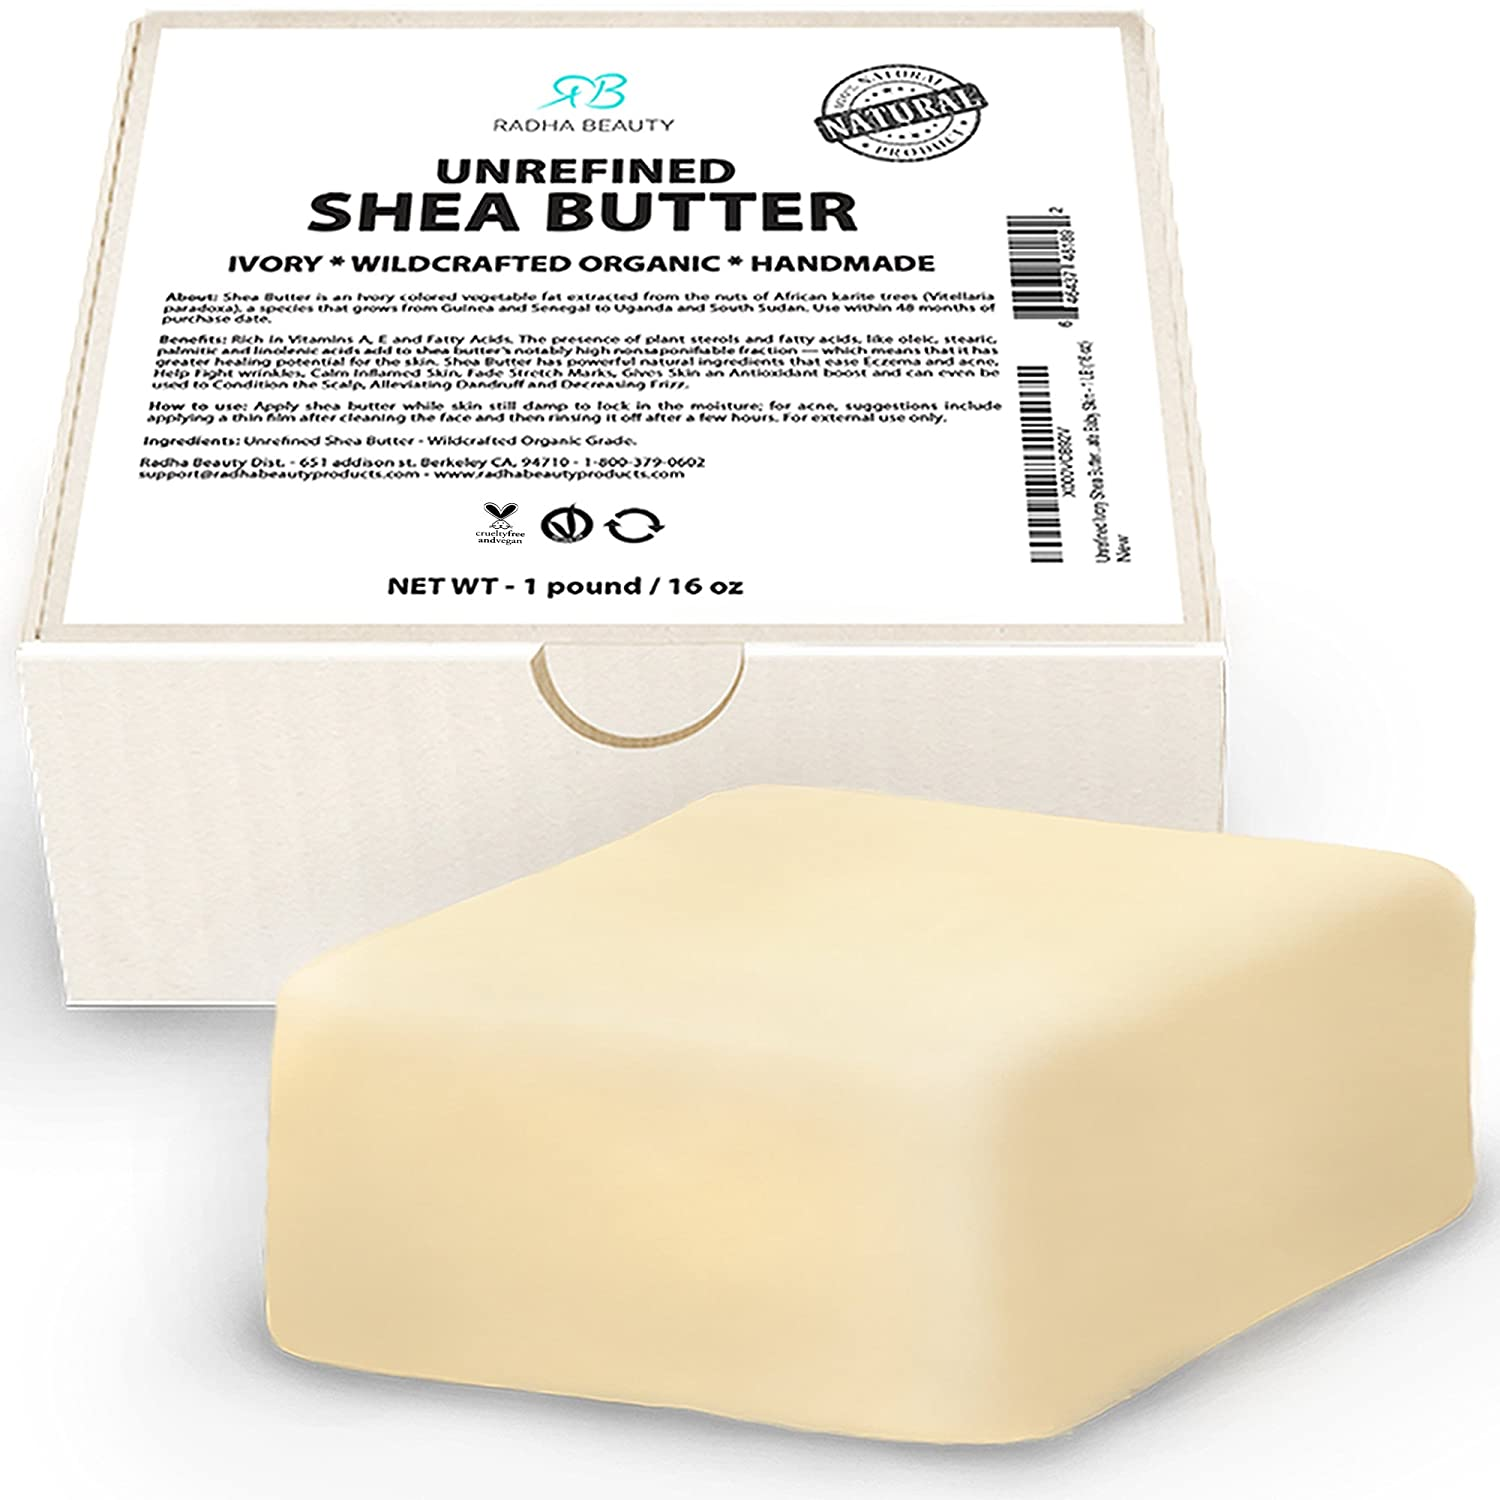 Radha Beauty Unrefined Shea Butter - 1 lb (16 oz) Premium Ivory Shea Butter for DIY Skin Care Recipes, Dry or Acne-Prone Skin, Eczema, Stretch Marks and Delicate Baby Skin